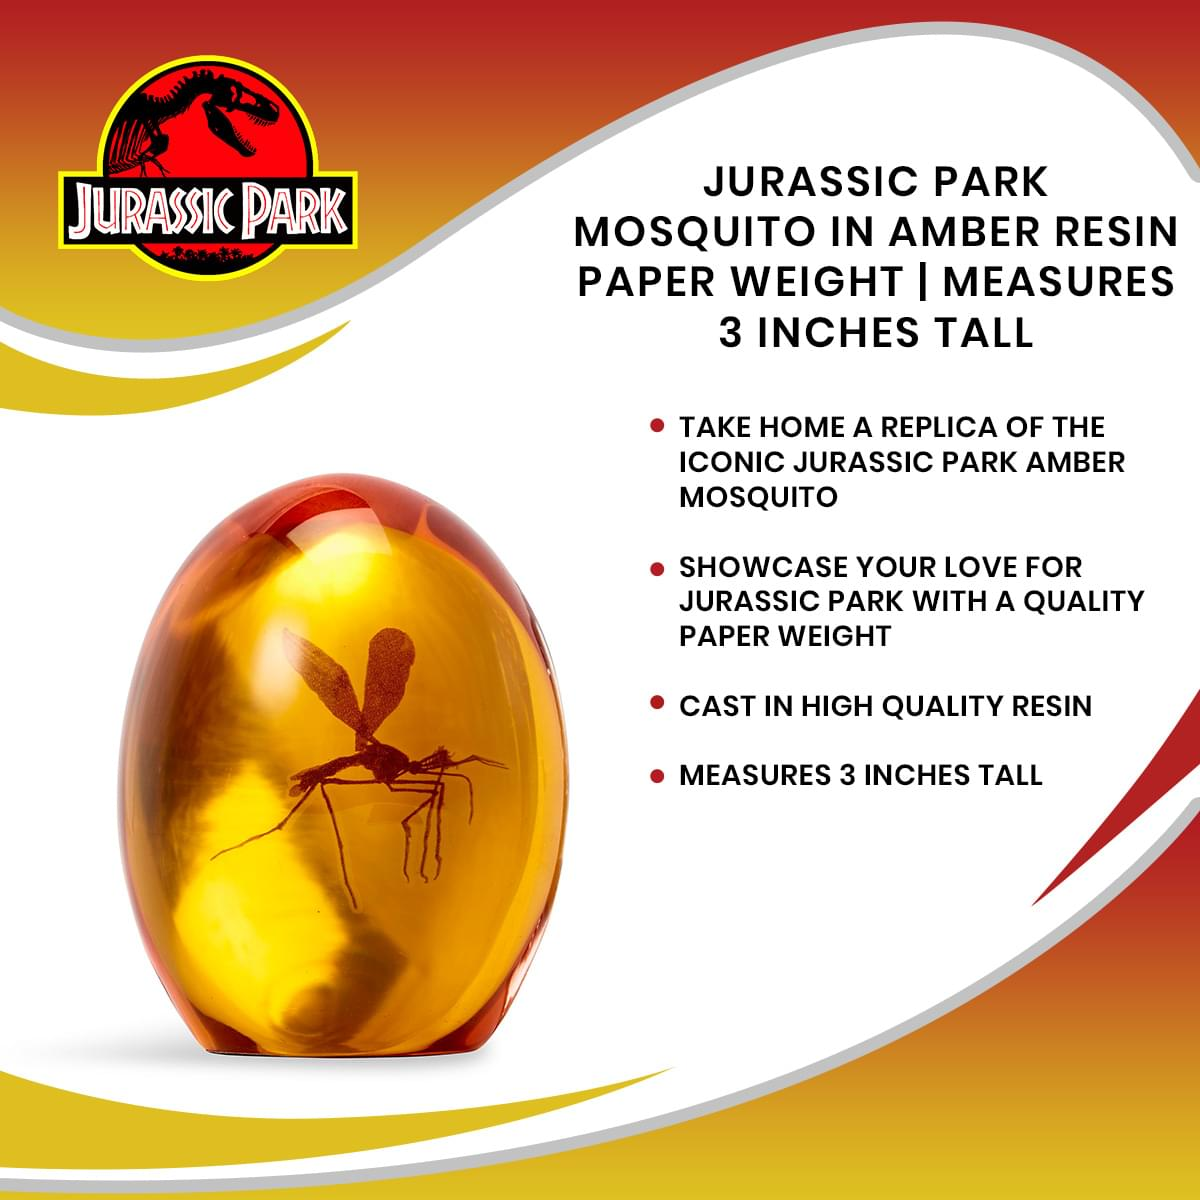 Jurassic Park Mosquito In Amber Resin Paper Weight | Measures 3 Inches Tall